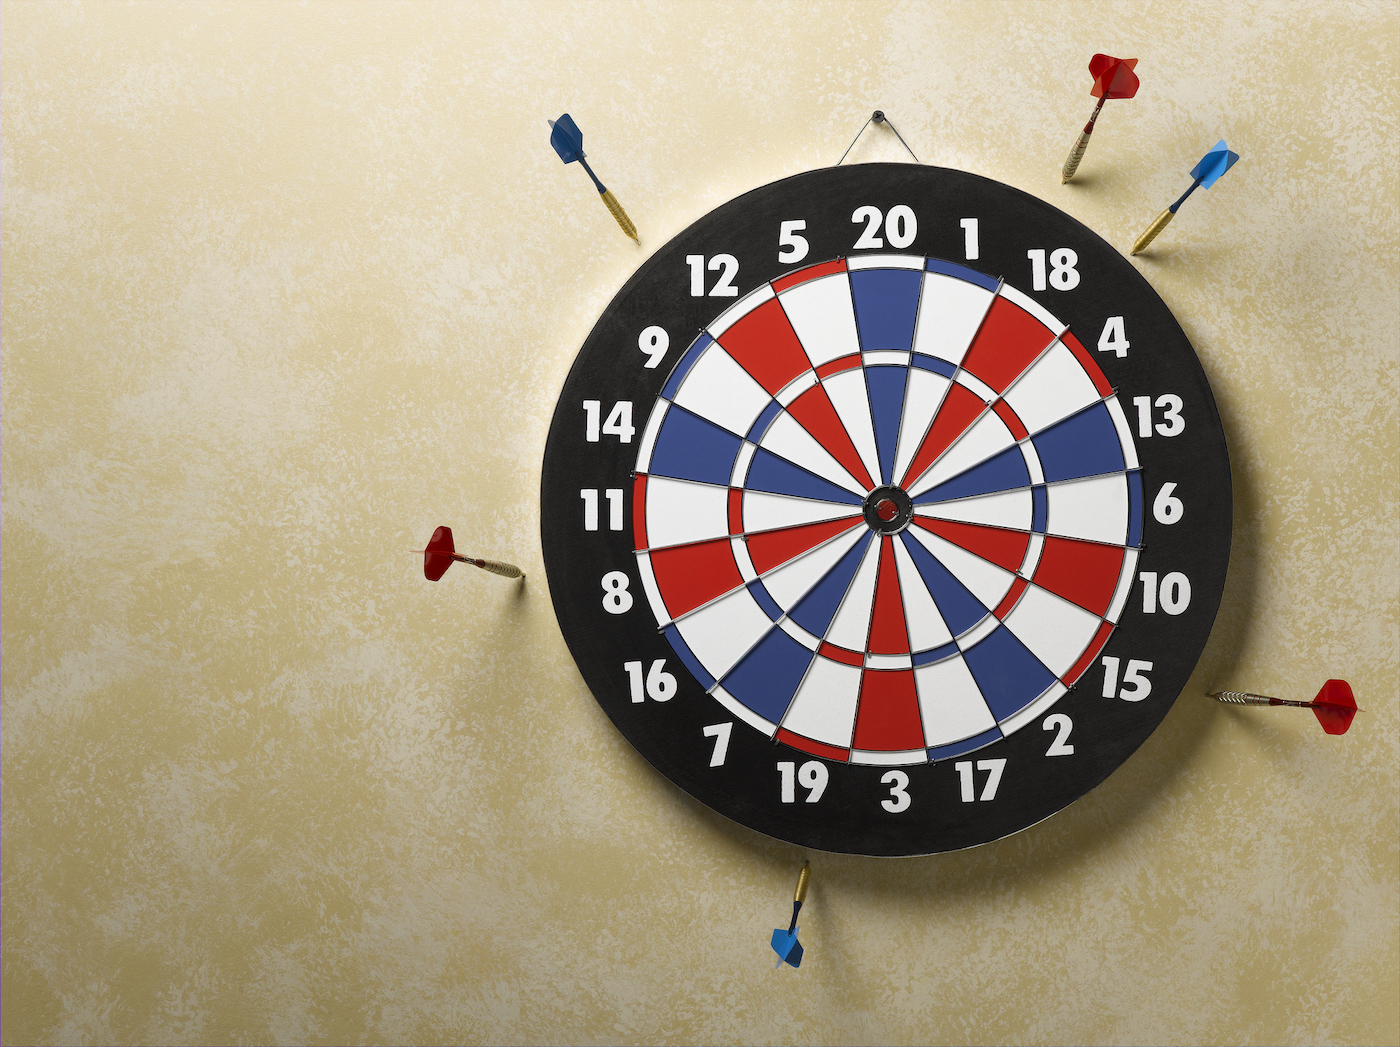 Red and blue darts in wall around red, white and blue dart board